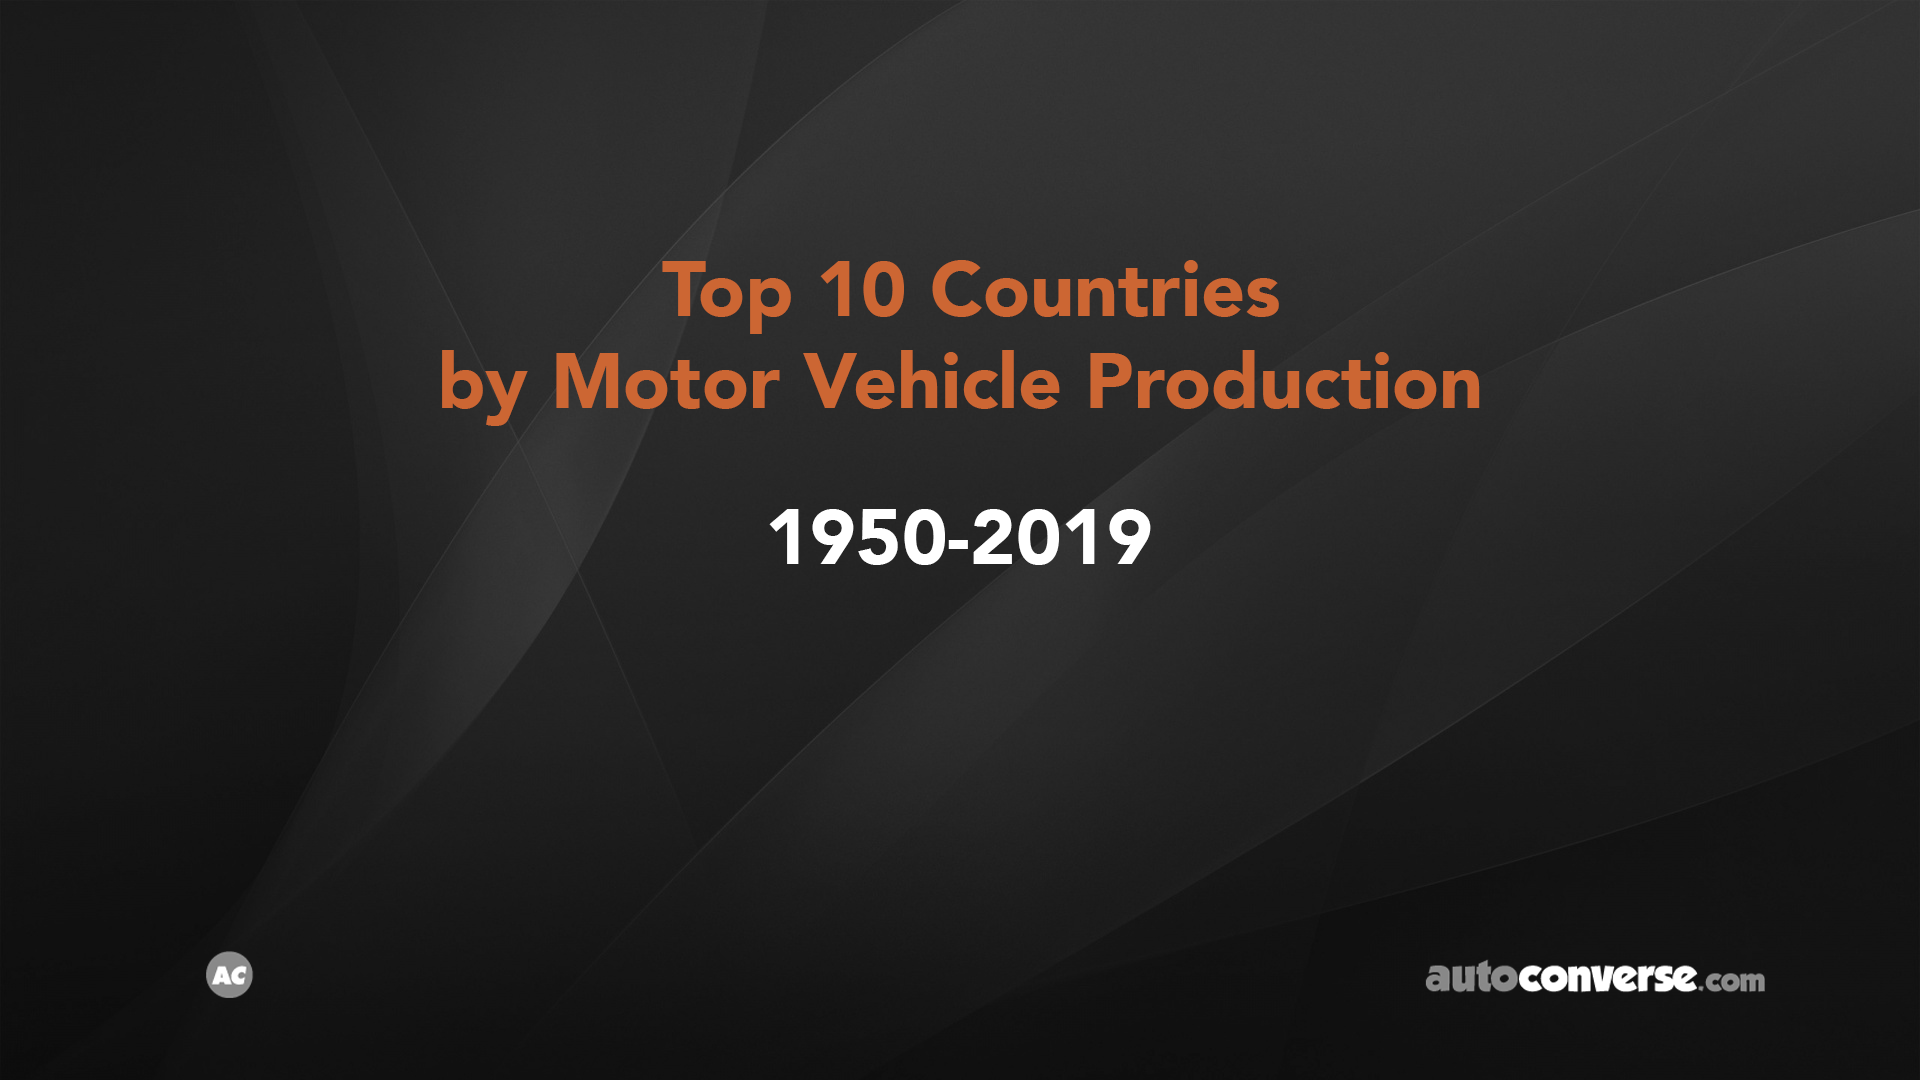 Top 10 Car Producing Countries from 1950-2019 [VIDEO]